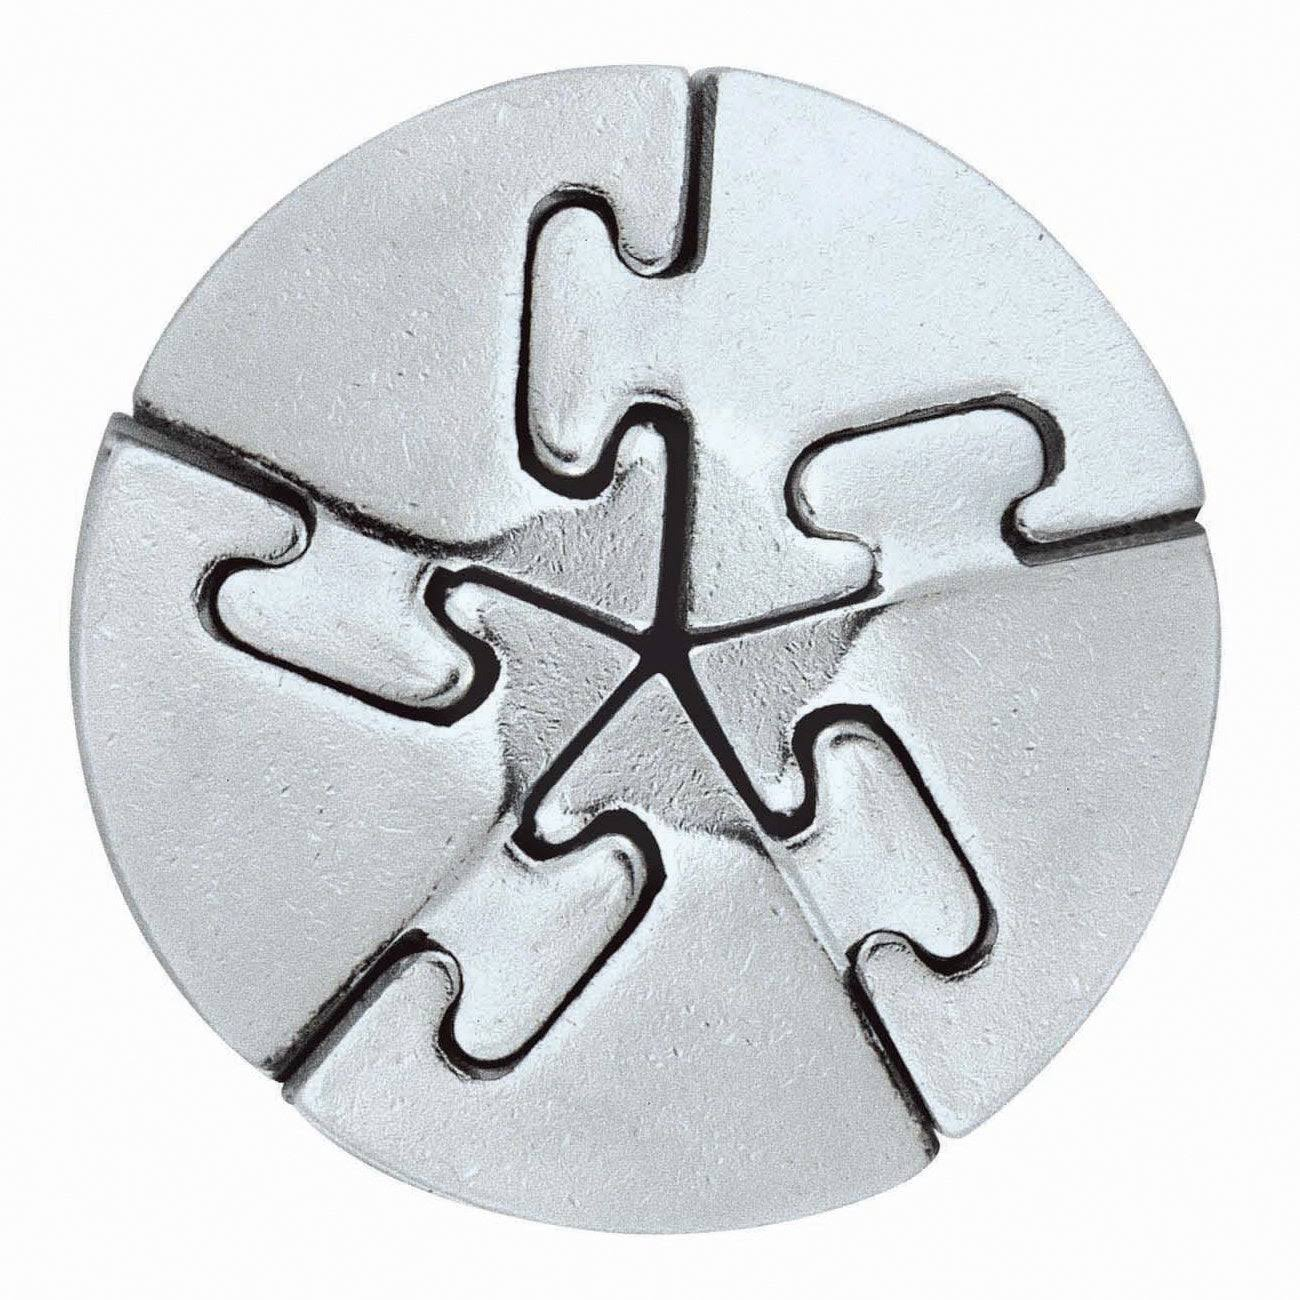 Hanayama Cast Metal Brainteaser Puzzles - Spiral Puzzle Level 5